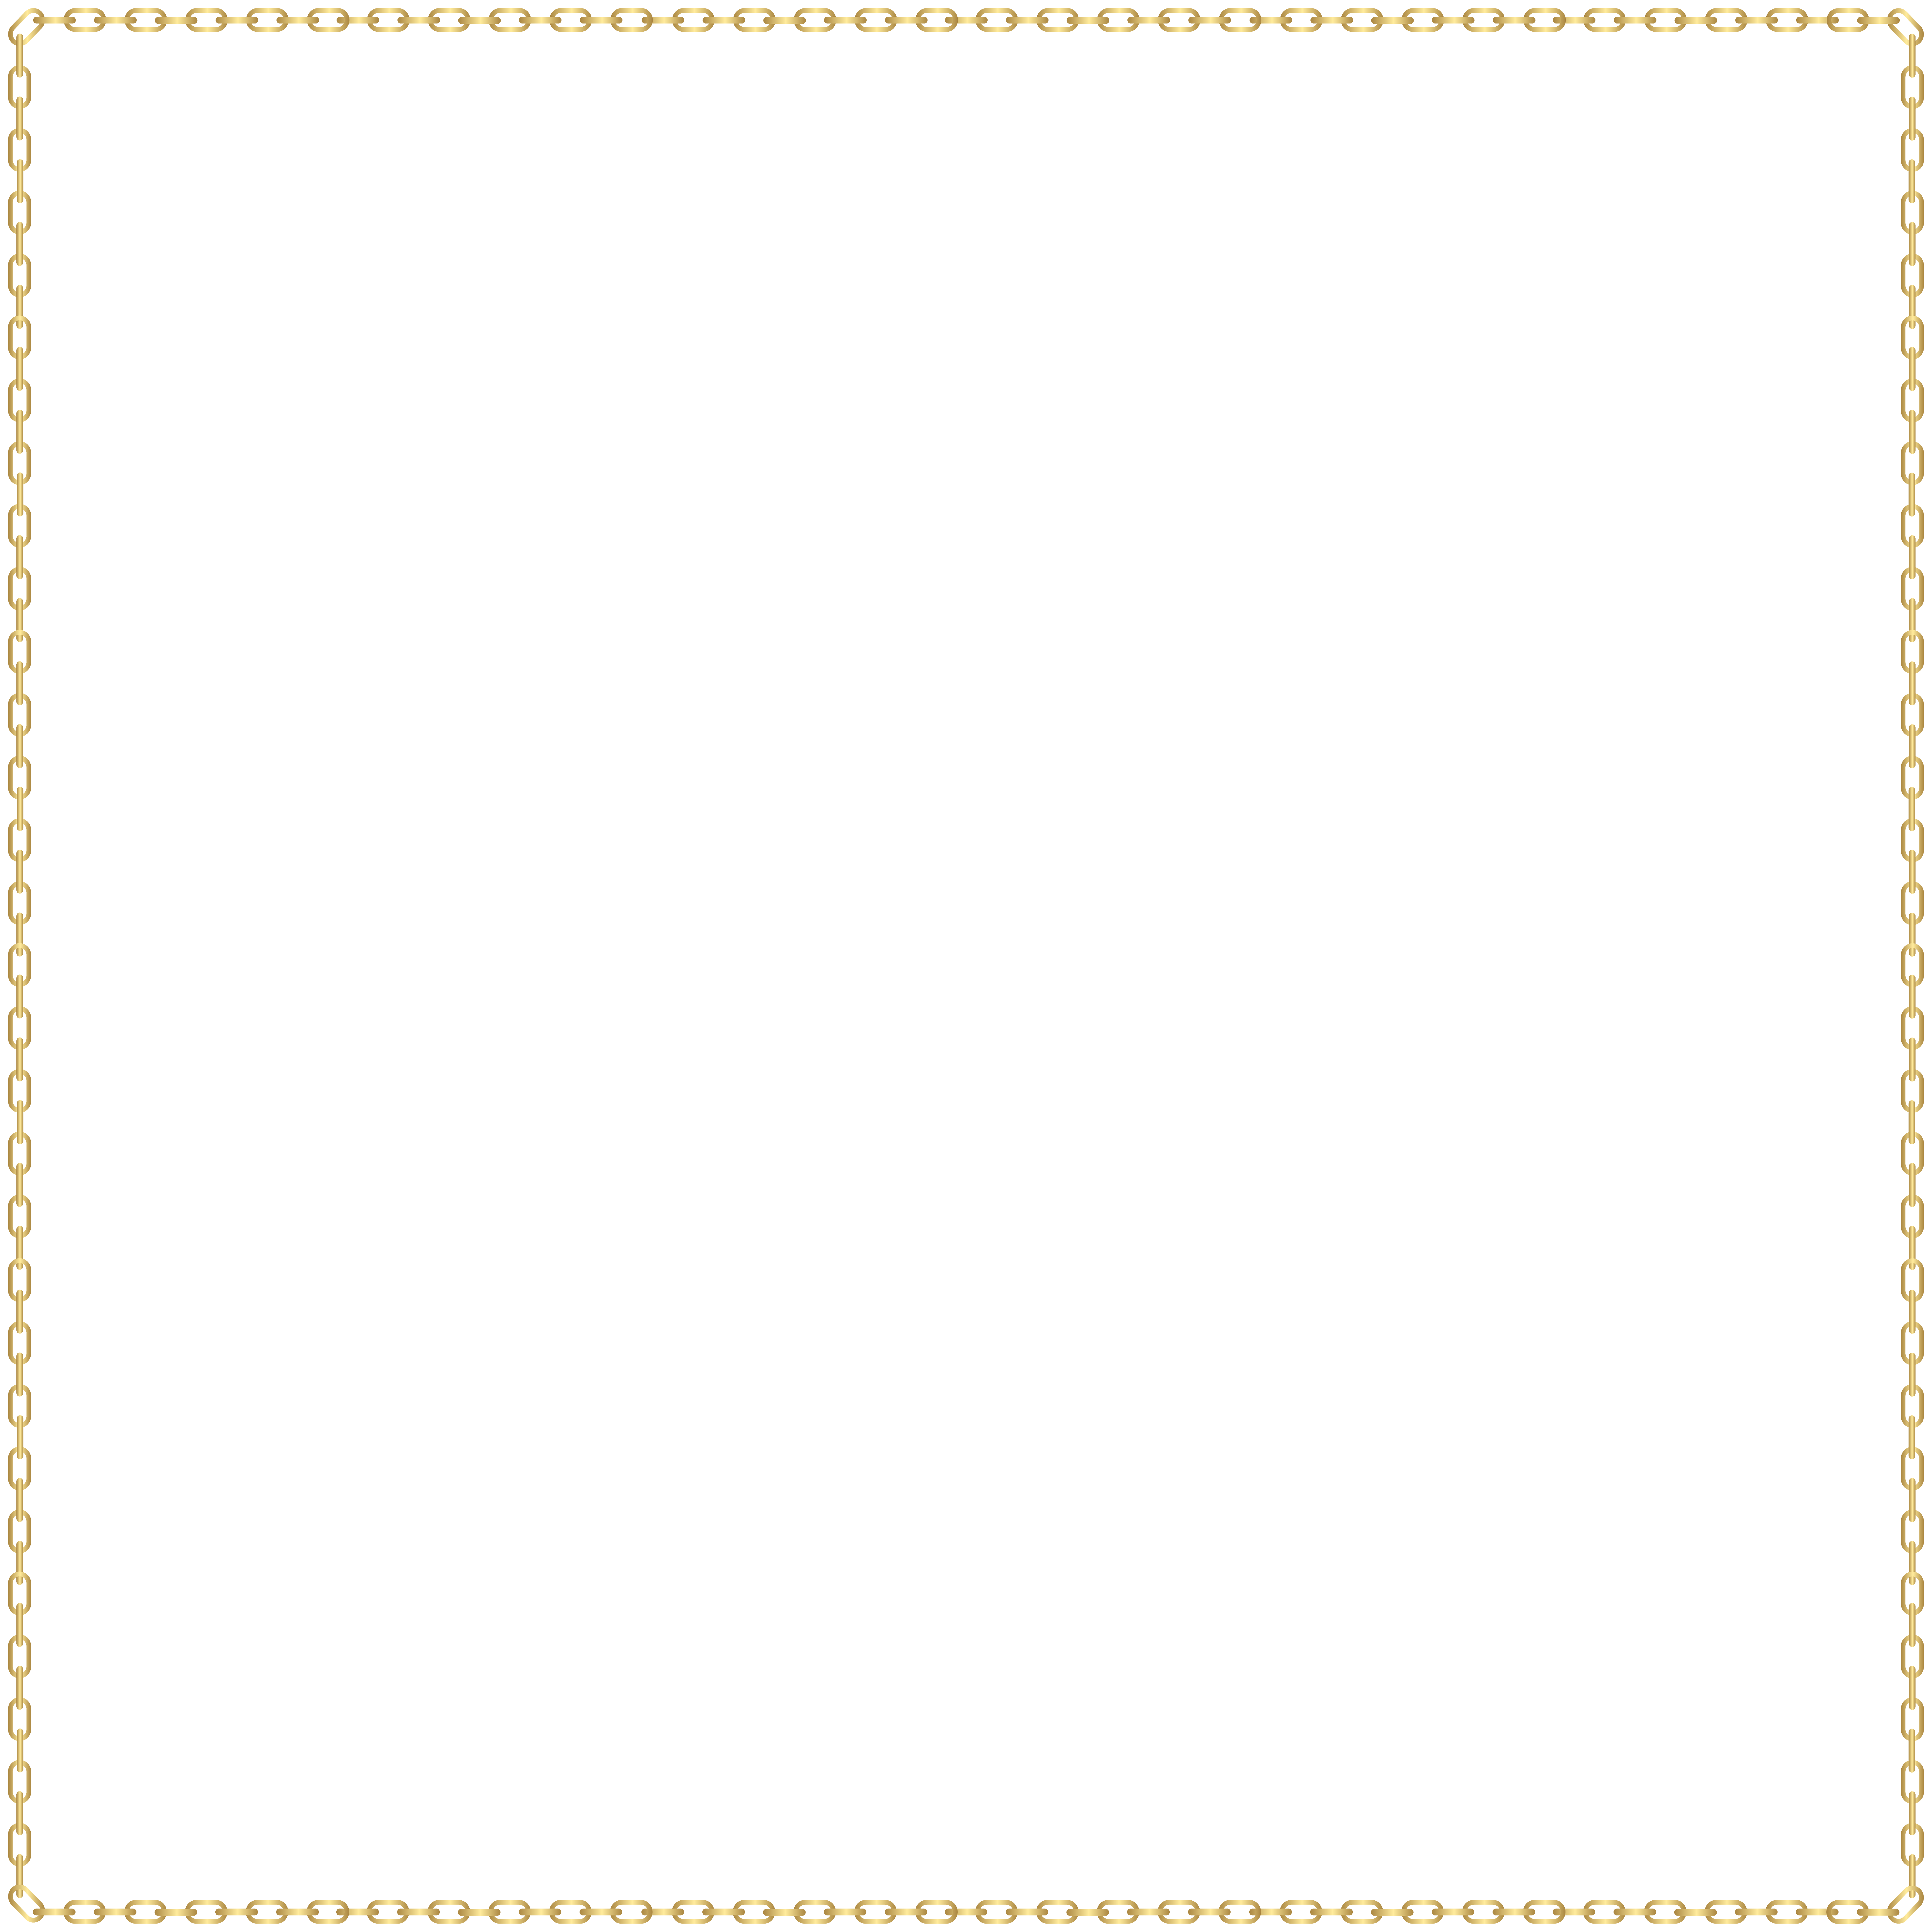 Chain border png. Frame transparent image gallery